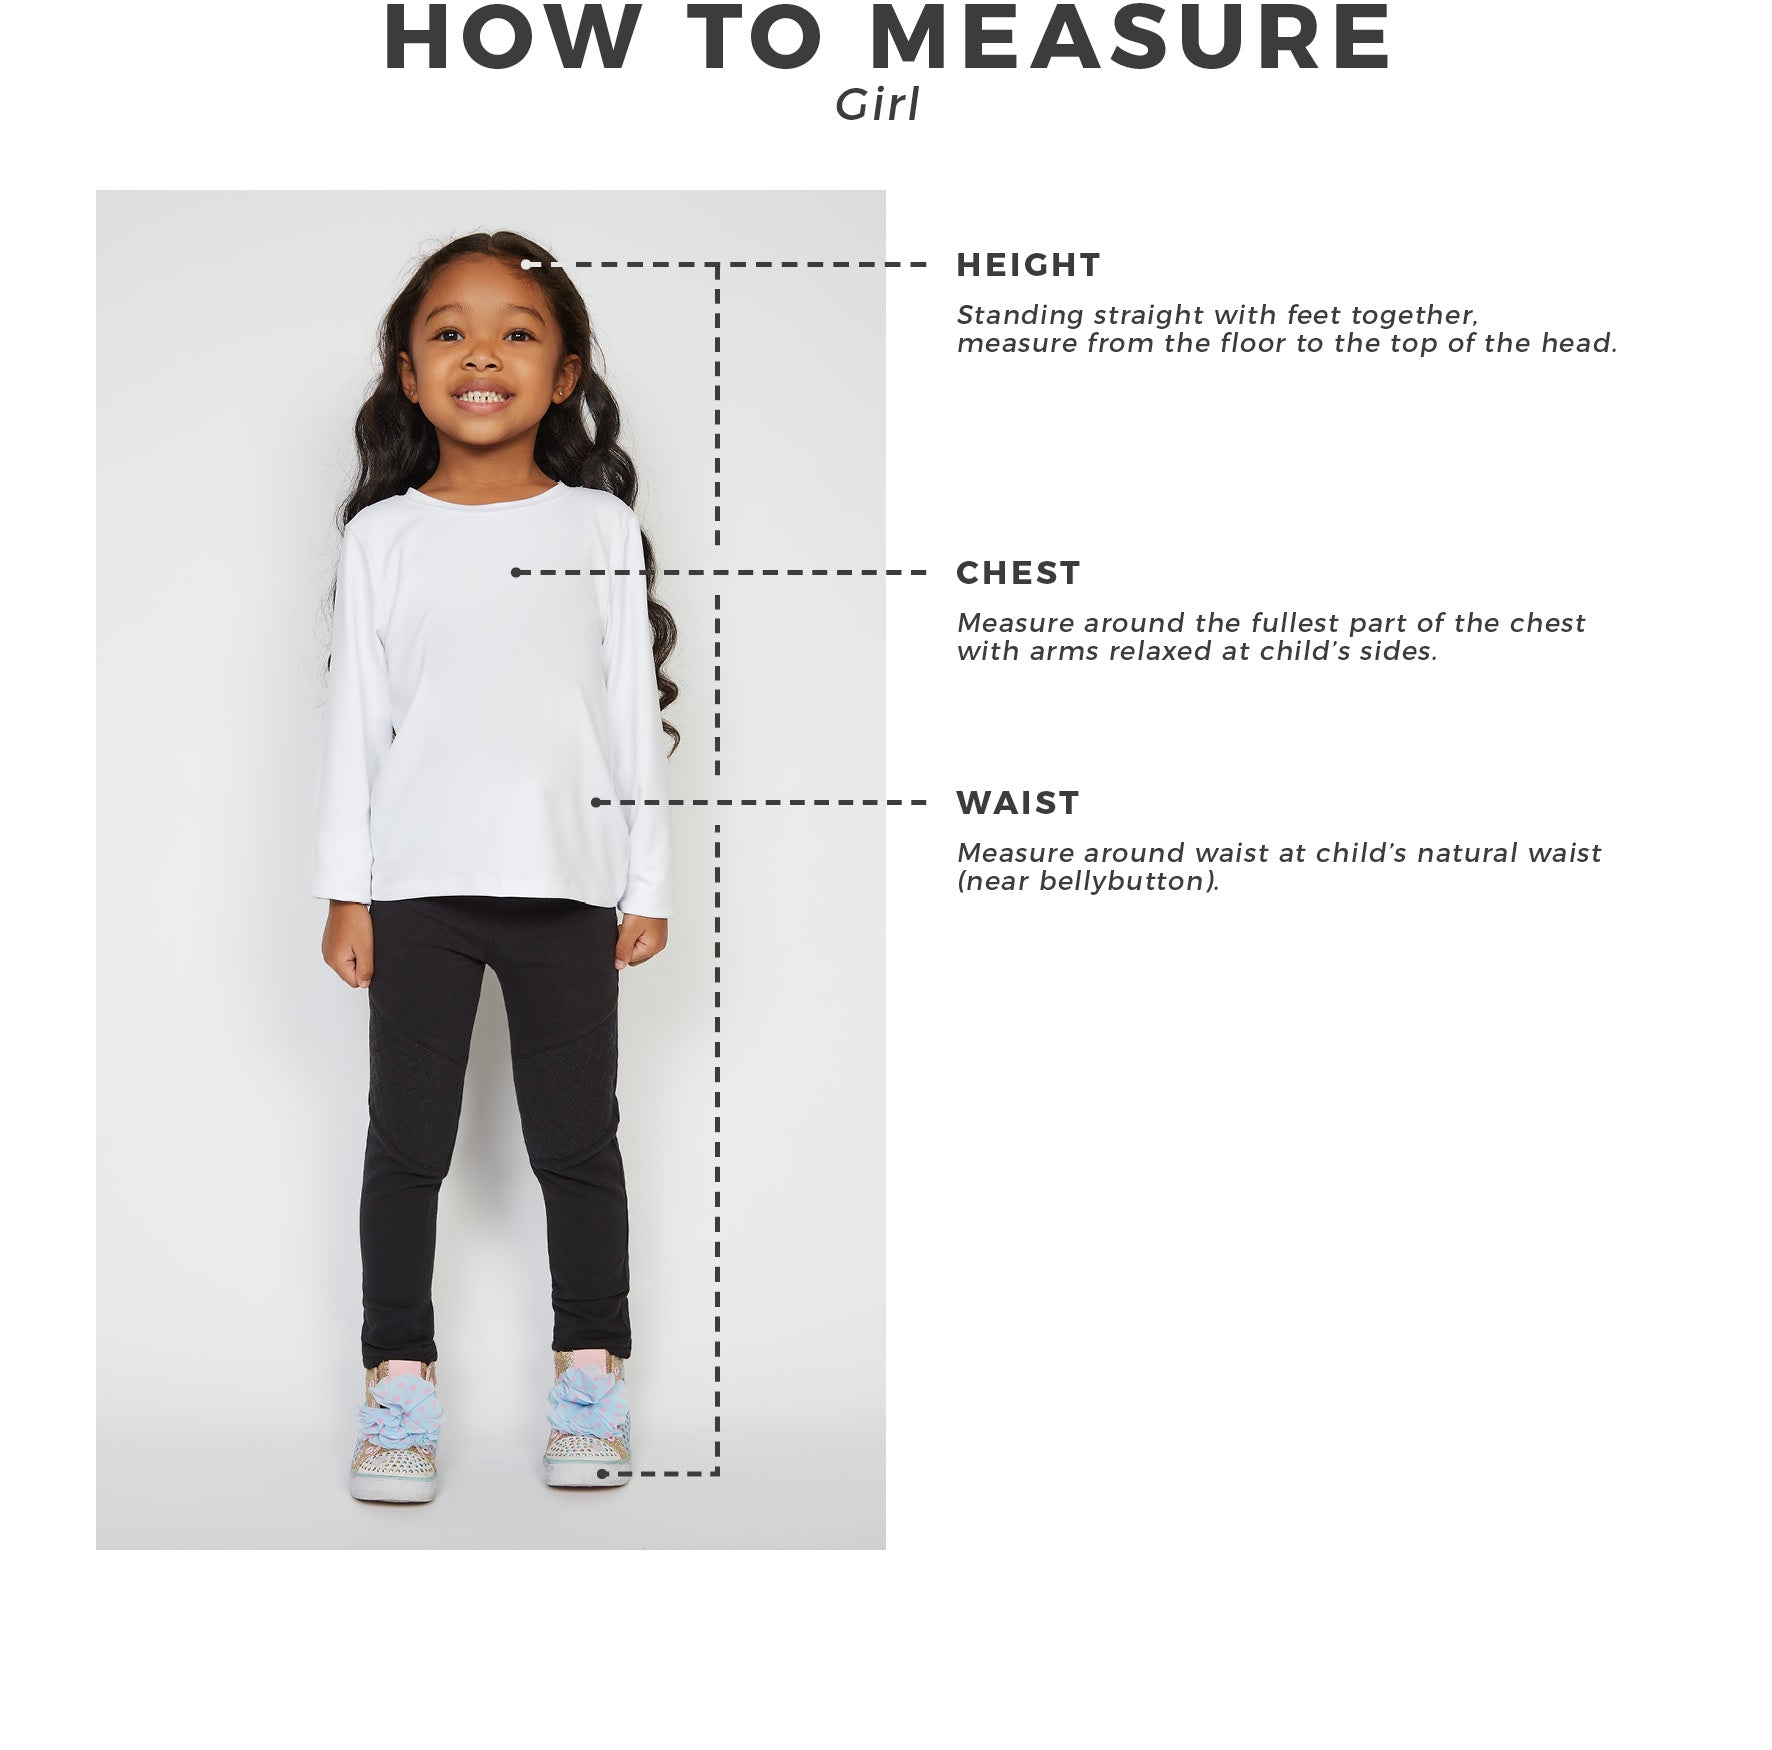 Urban Planet - Kids - Girls - How To Measure